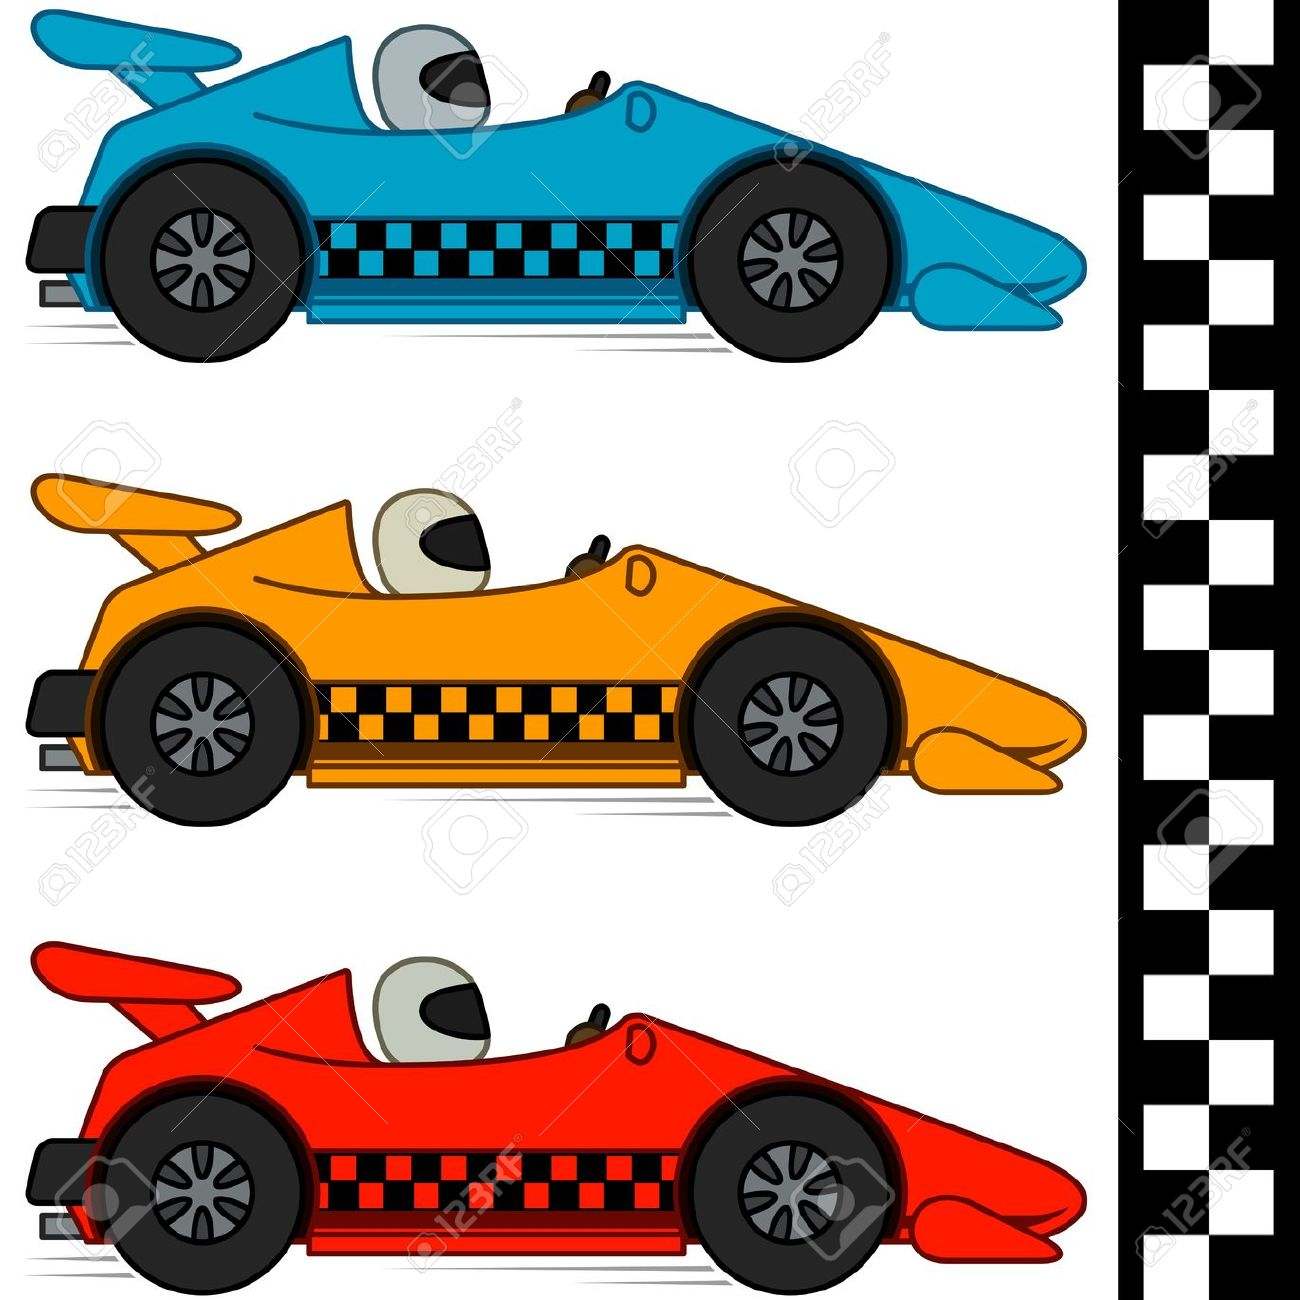 Race Car clipart red Com Cliparting Car 60 clipart